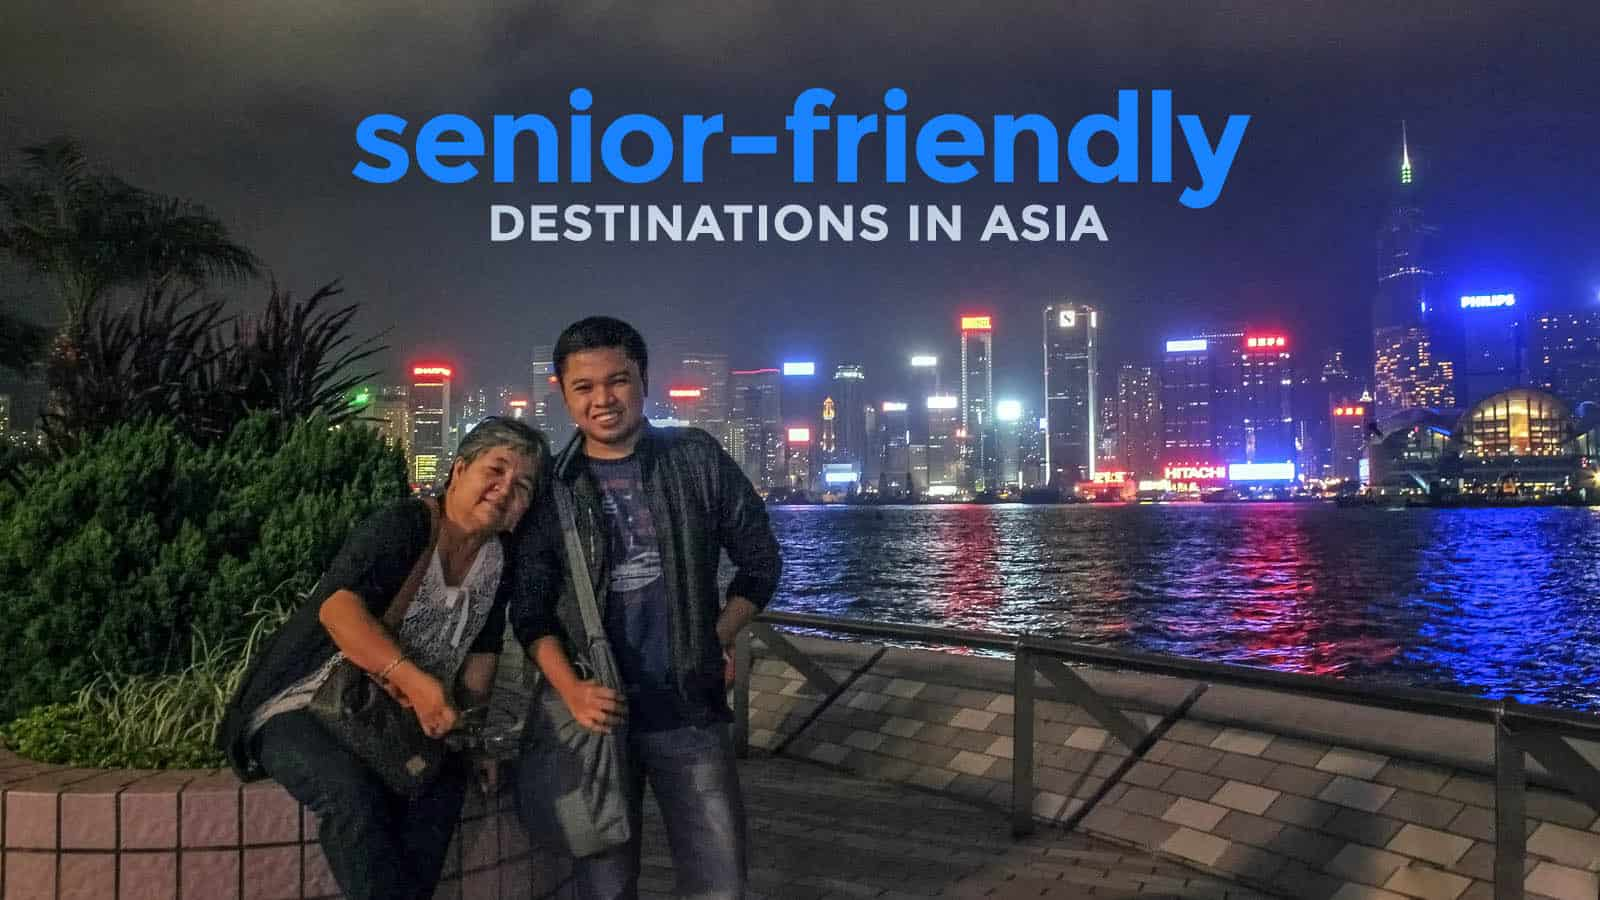 TRAVELING WITH SENIORS: Top 10 Destinations in Asia